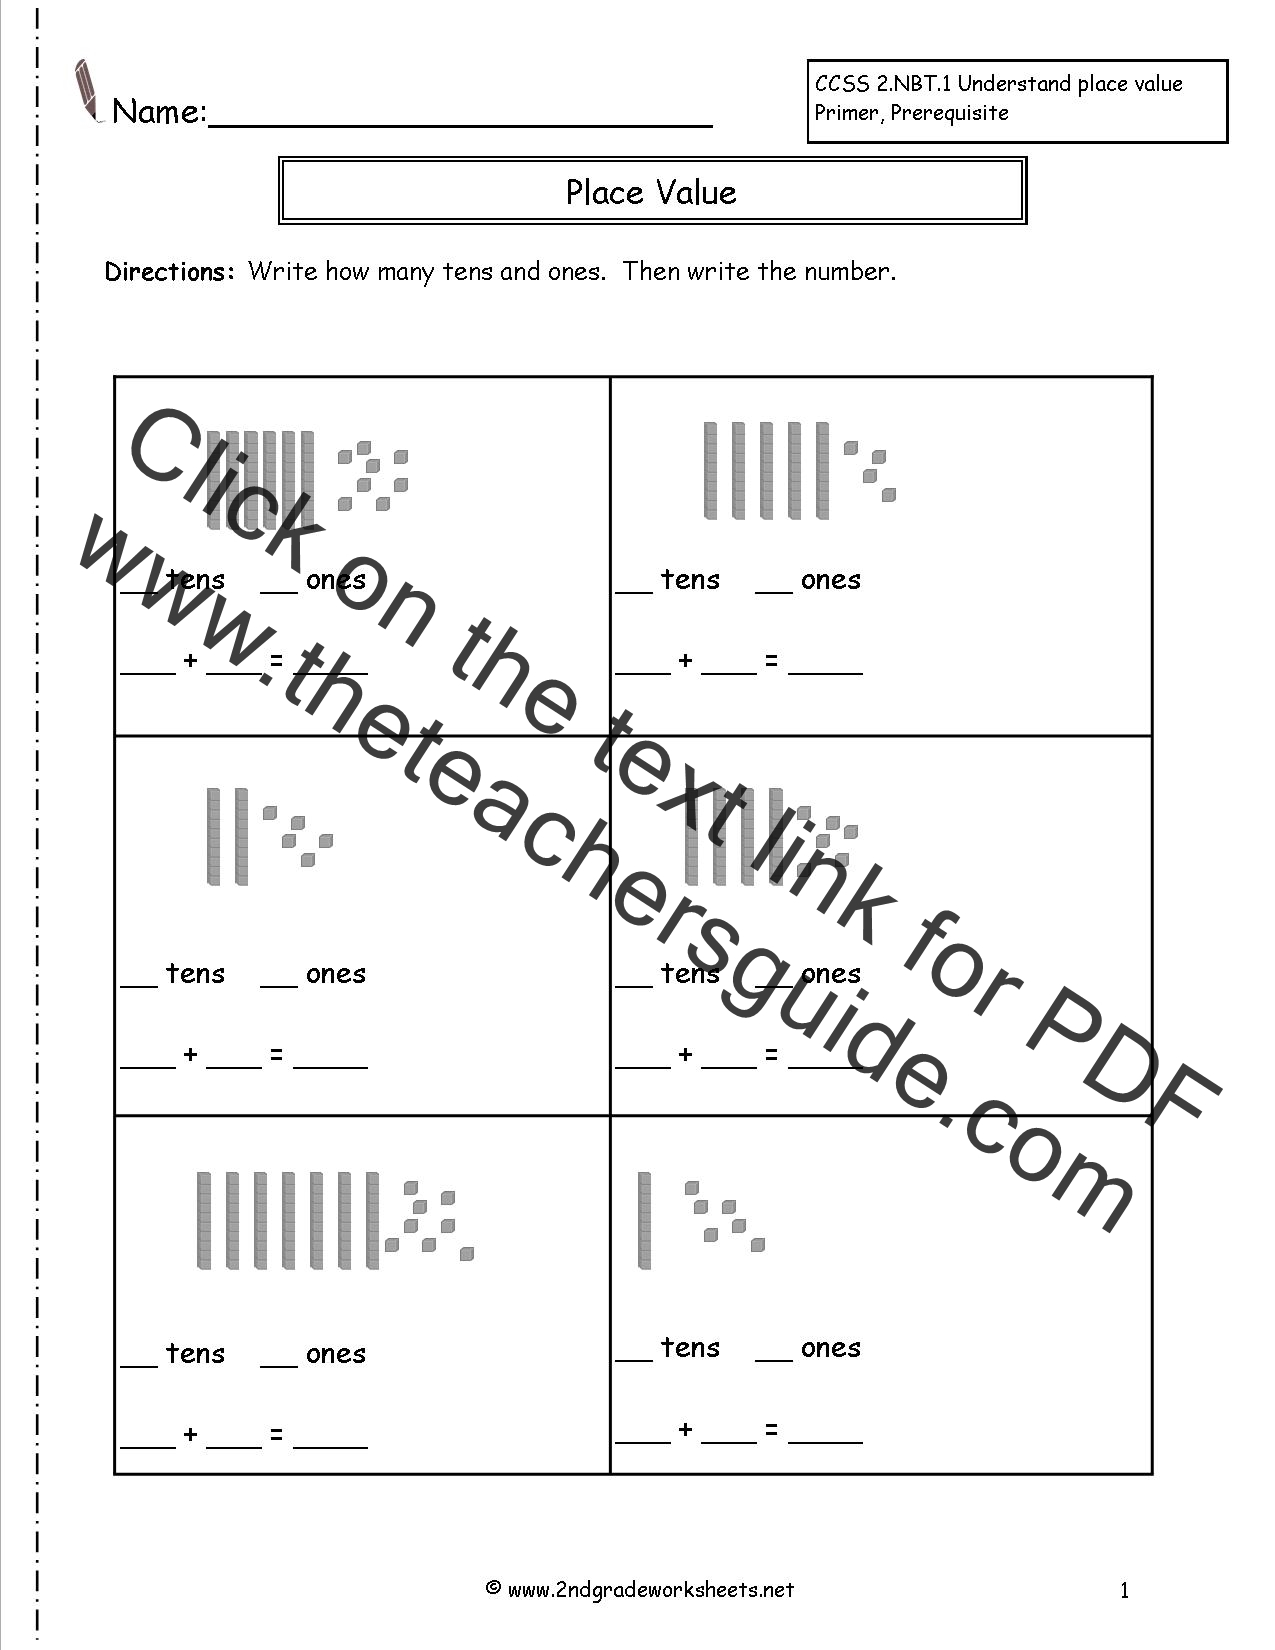 Second Grade Place Value Worksheets – Free Printable Place Value Worksheets